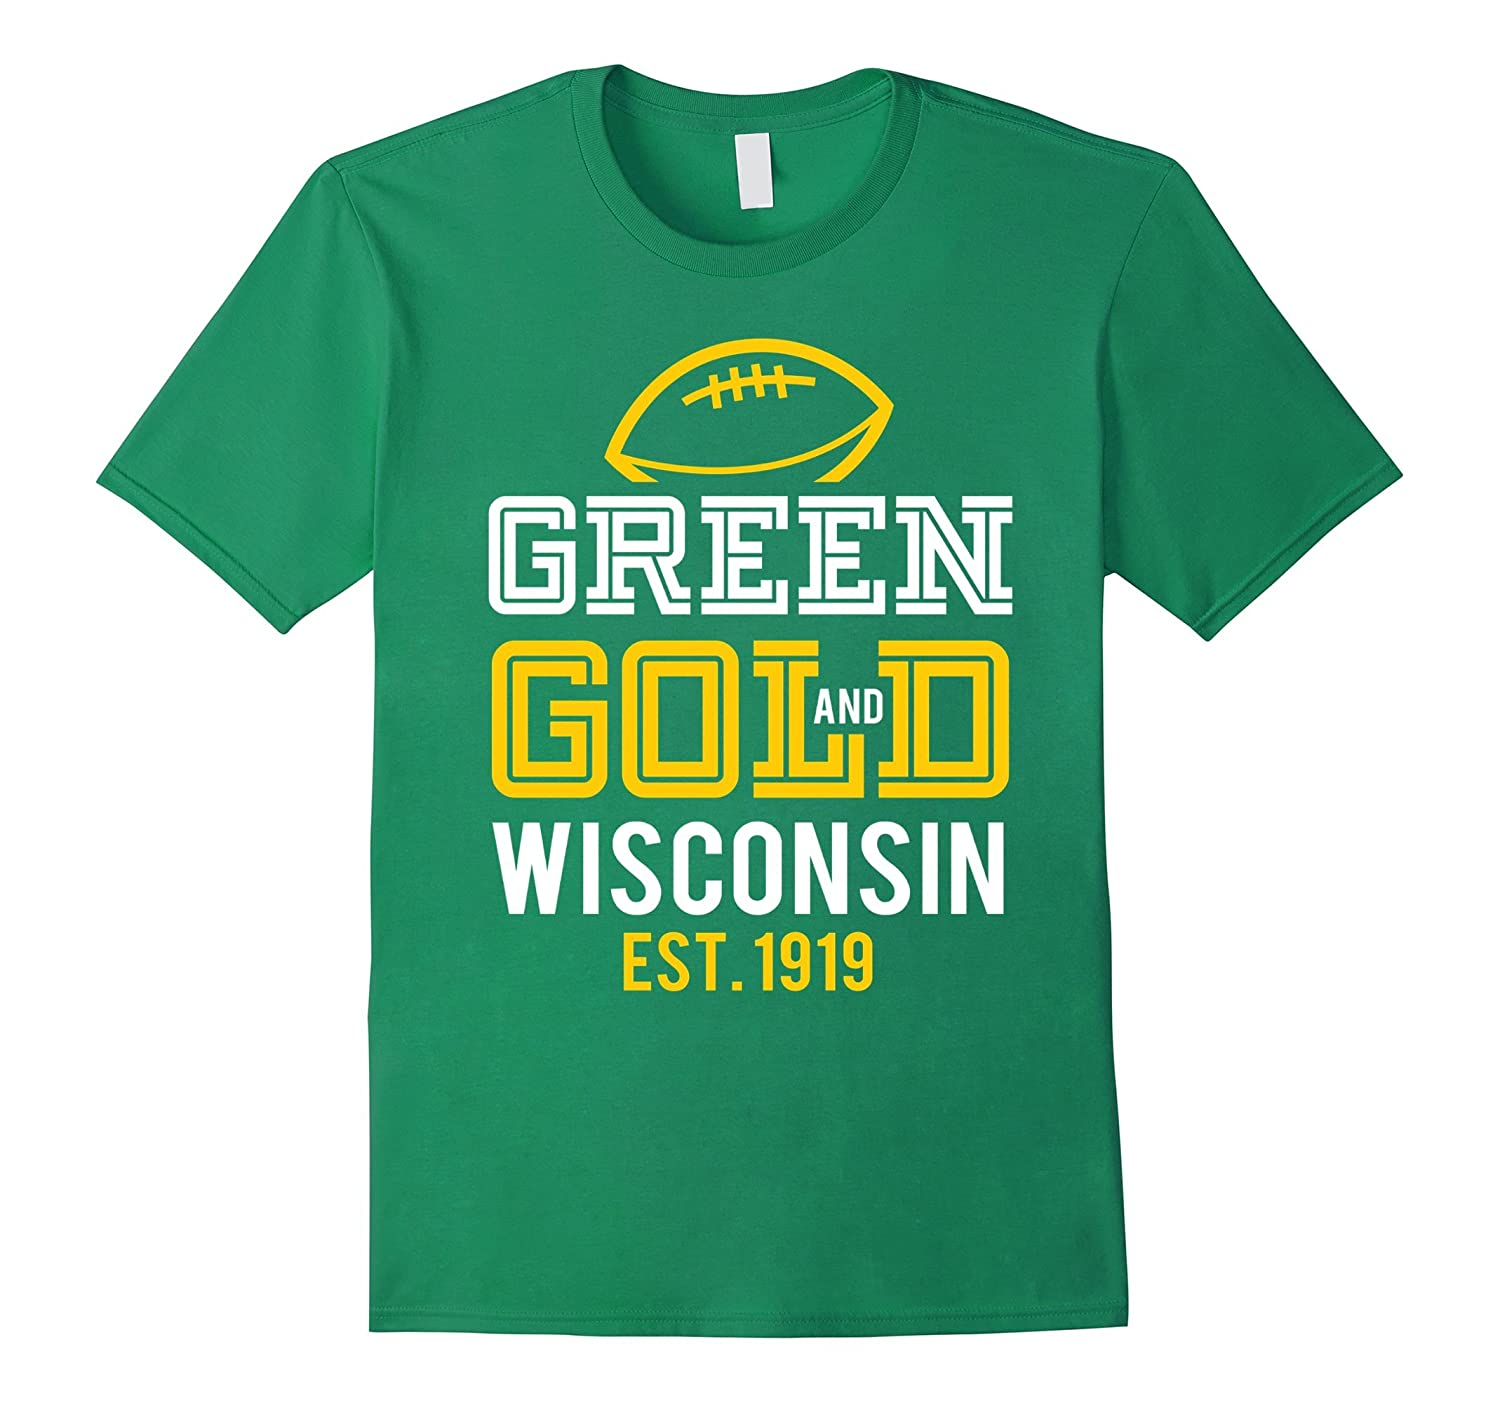 Green and Gold Wisconsin Green Bay Team Fan T Shirt-TJ